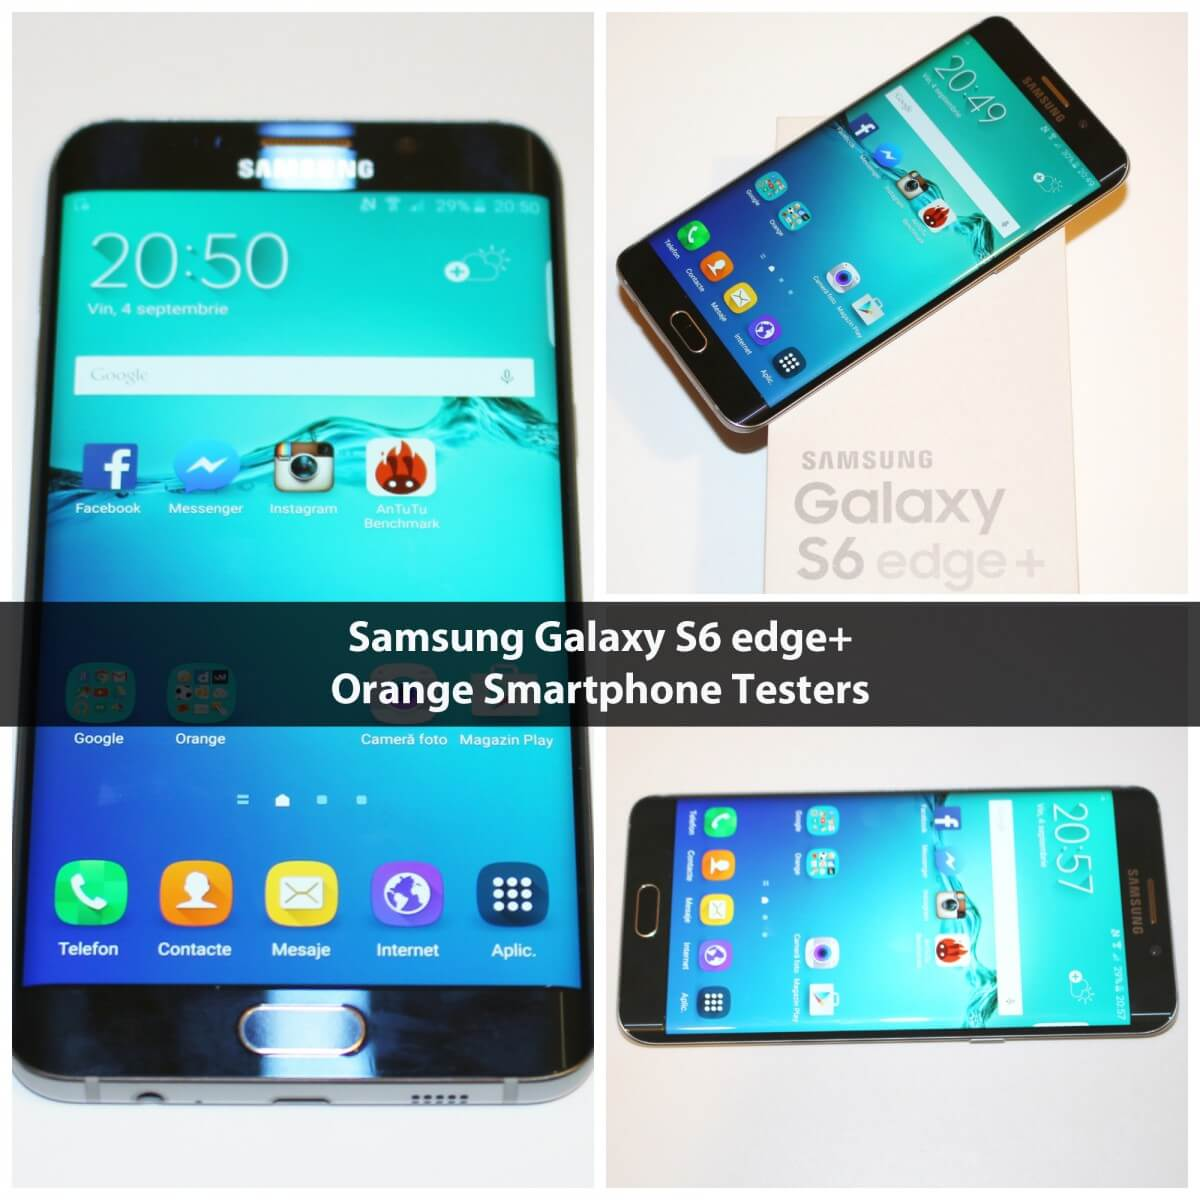 Samsung Galaxy S6 Edge+ Orange Smartphone Testers